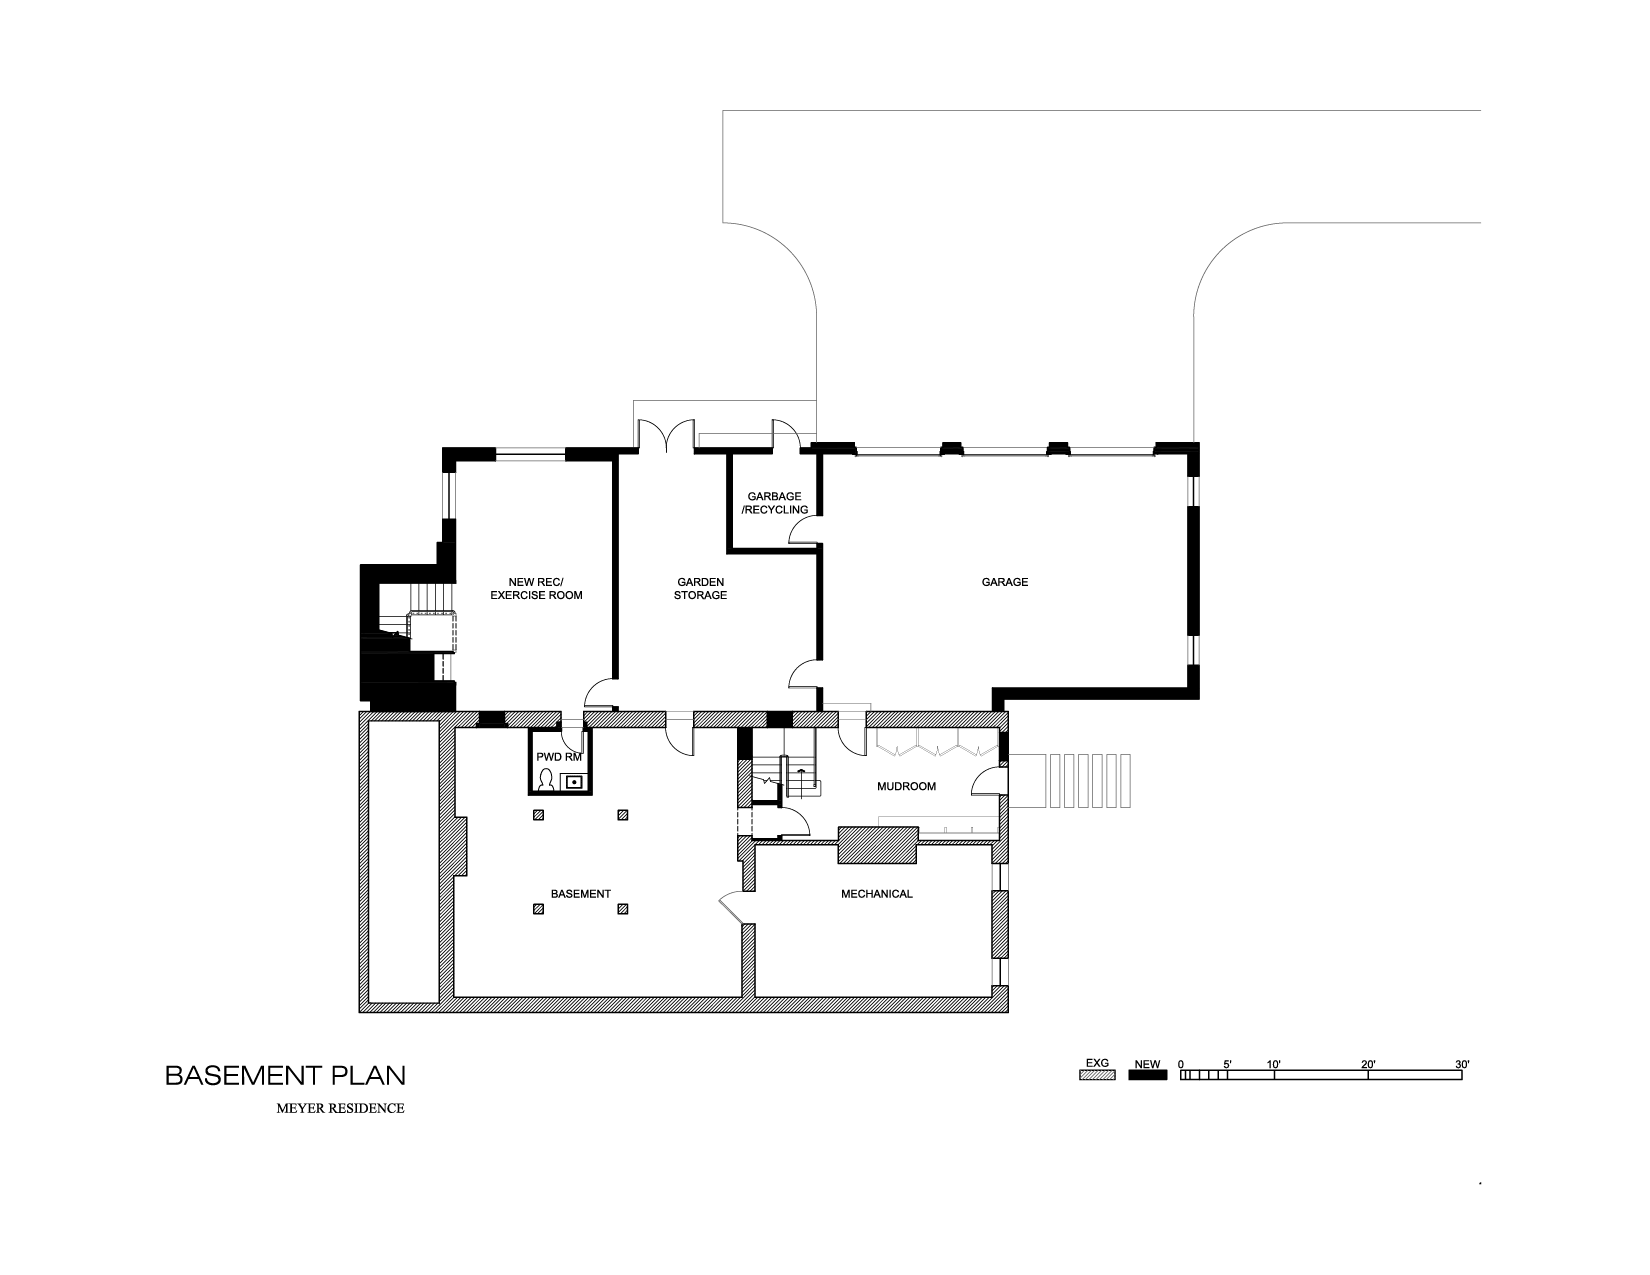 Presentation Drawings Basement Floor Plan-01